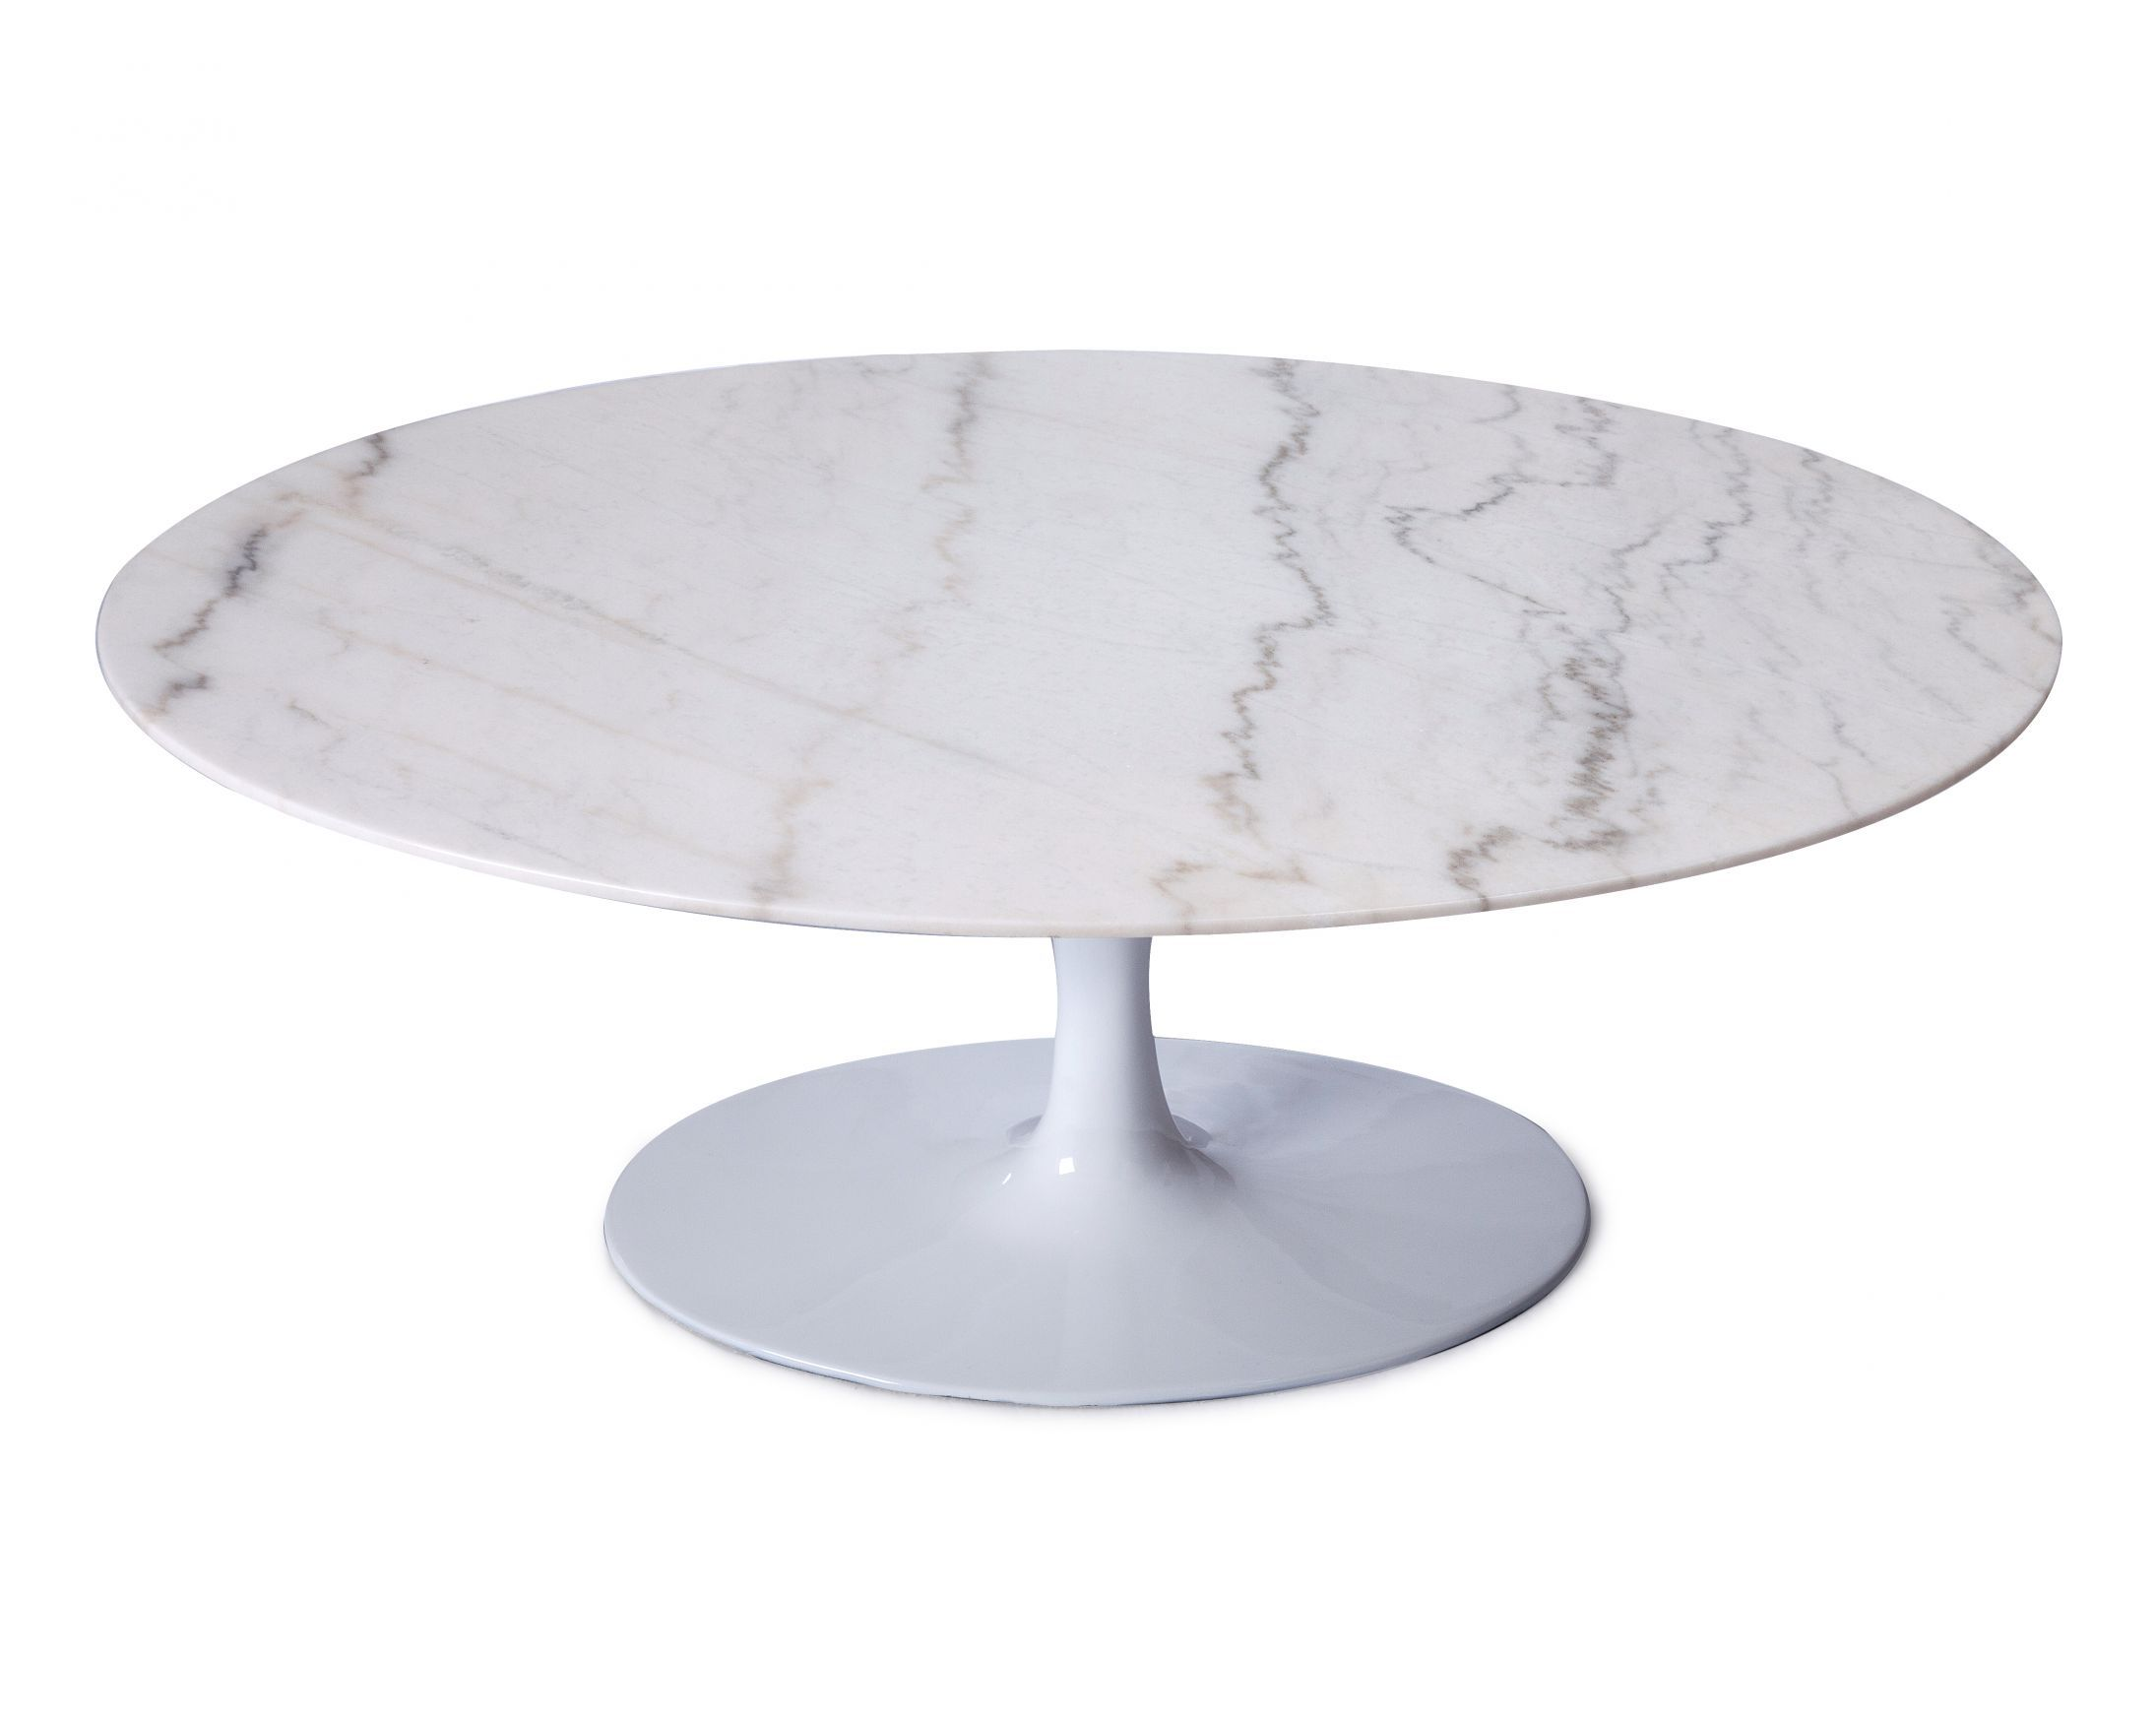 Saarinen Coffee Table   Oval | Mid Century Modern | Reproduction